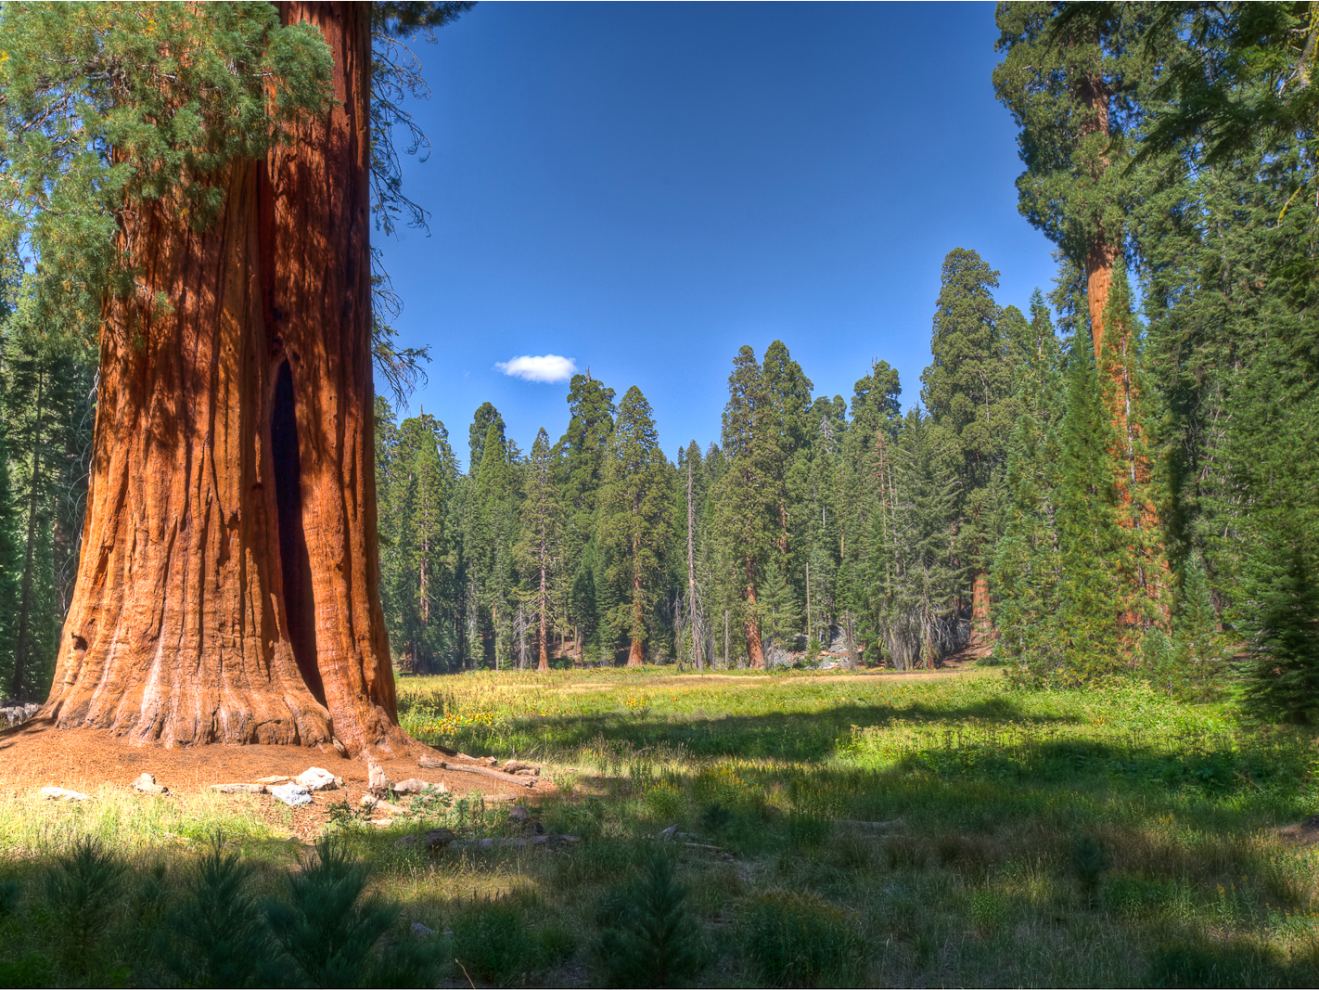 California's Sequoia National Park is home to a dramatic landscape of rugged foothills. Its famed giant sequoia trees have been becoming increasingly vulnerable due to higher numbers of wildfires.